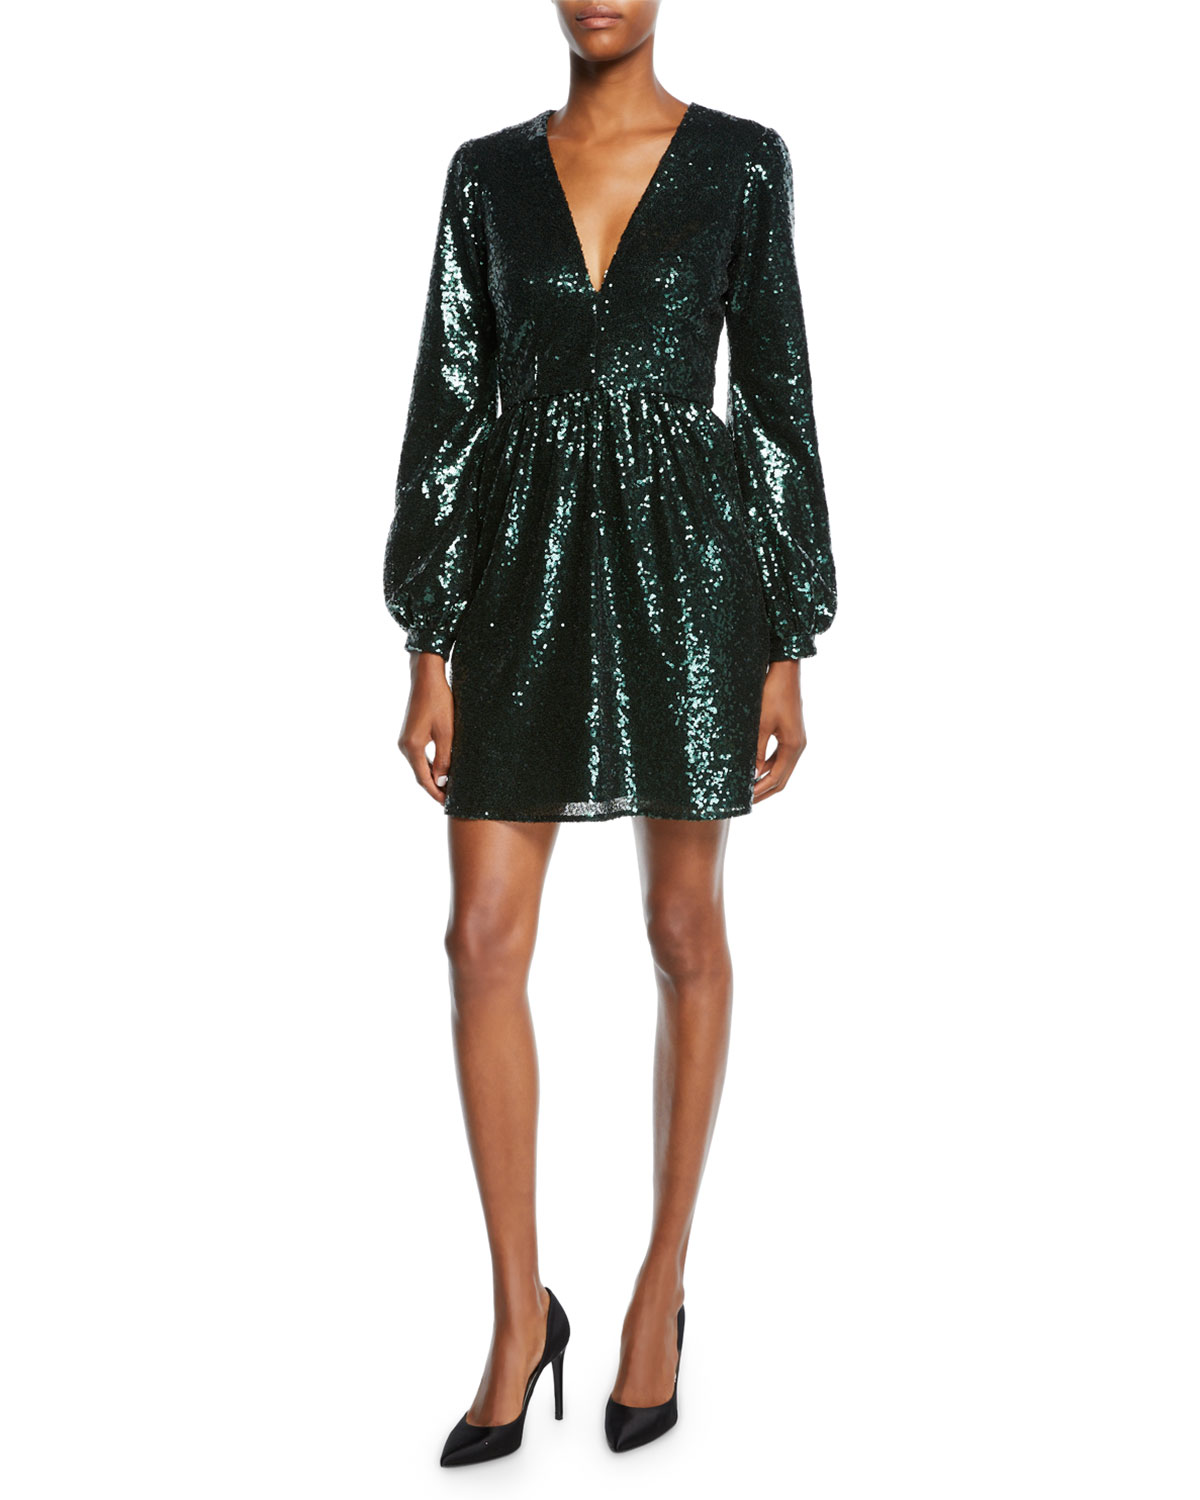 SALONI Camille Sequined Long-Sleeve Cocktail Dress in Green